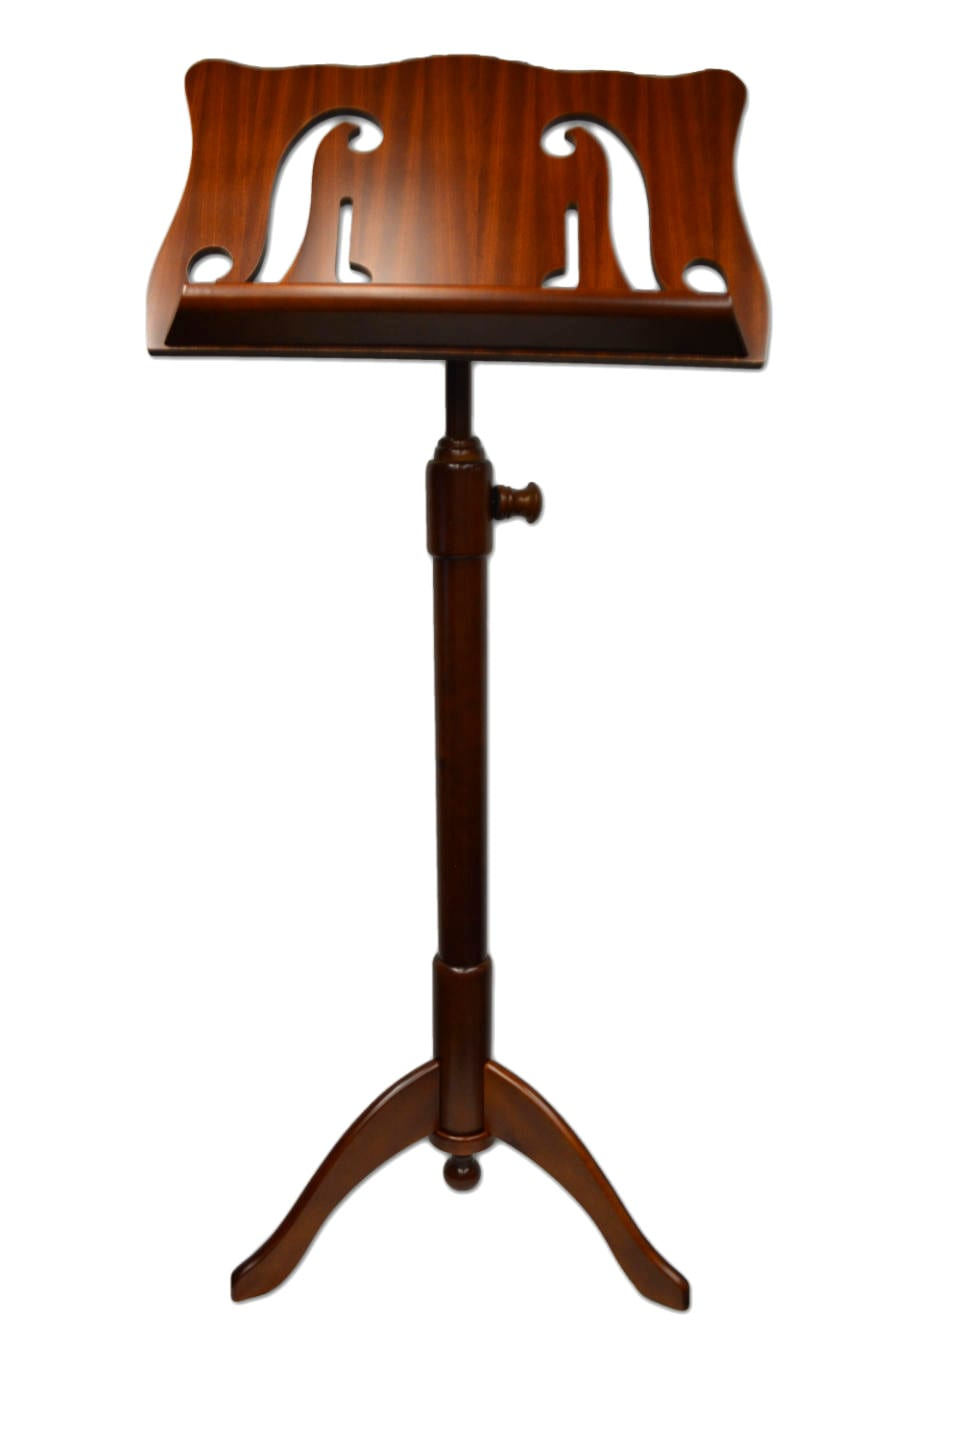 Frederick Walnut Music Stand - Violin F-Holes & Music Notes Available to ship May 10th 2019